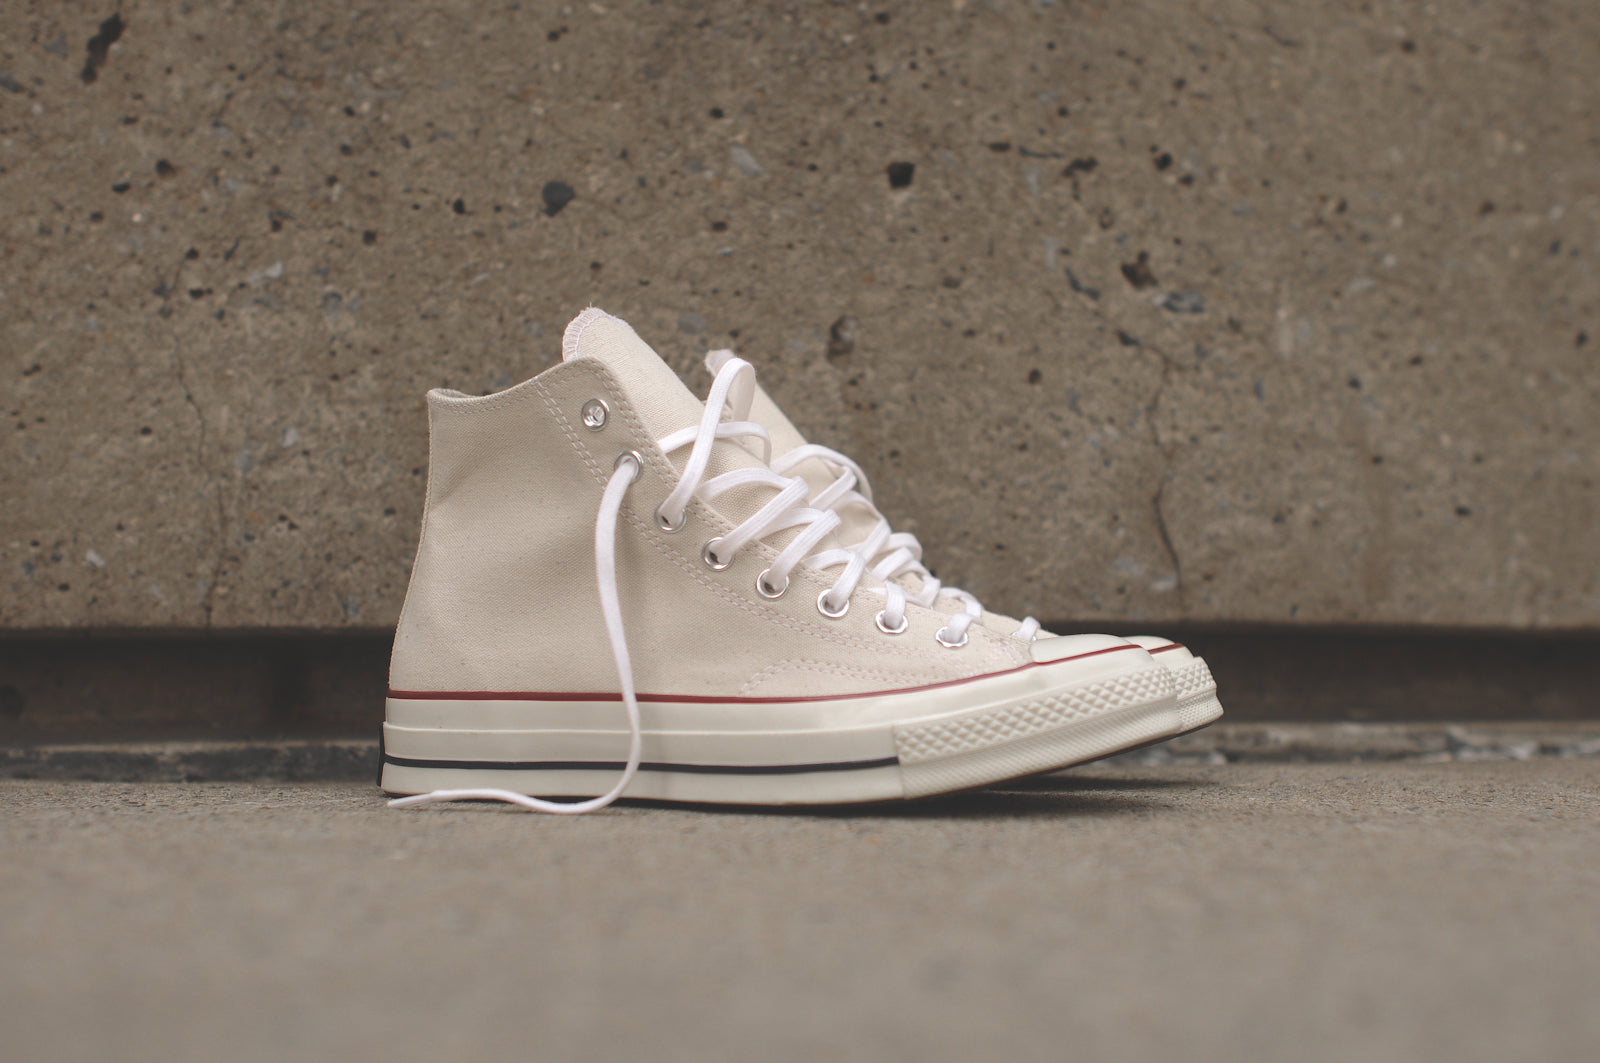 733053fb4246f CONVERSE CHUCK TAYLOR ALL-STAR HI 1970 - PARCHMENT WHITE   ALL-STAR ...